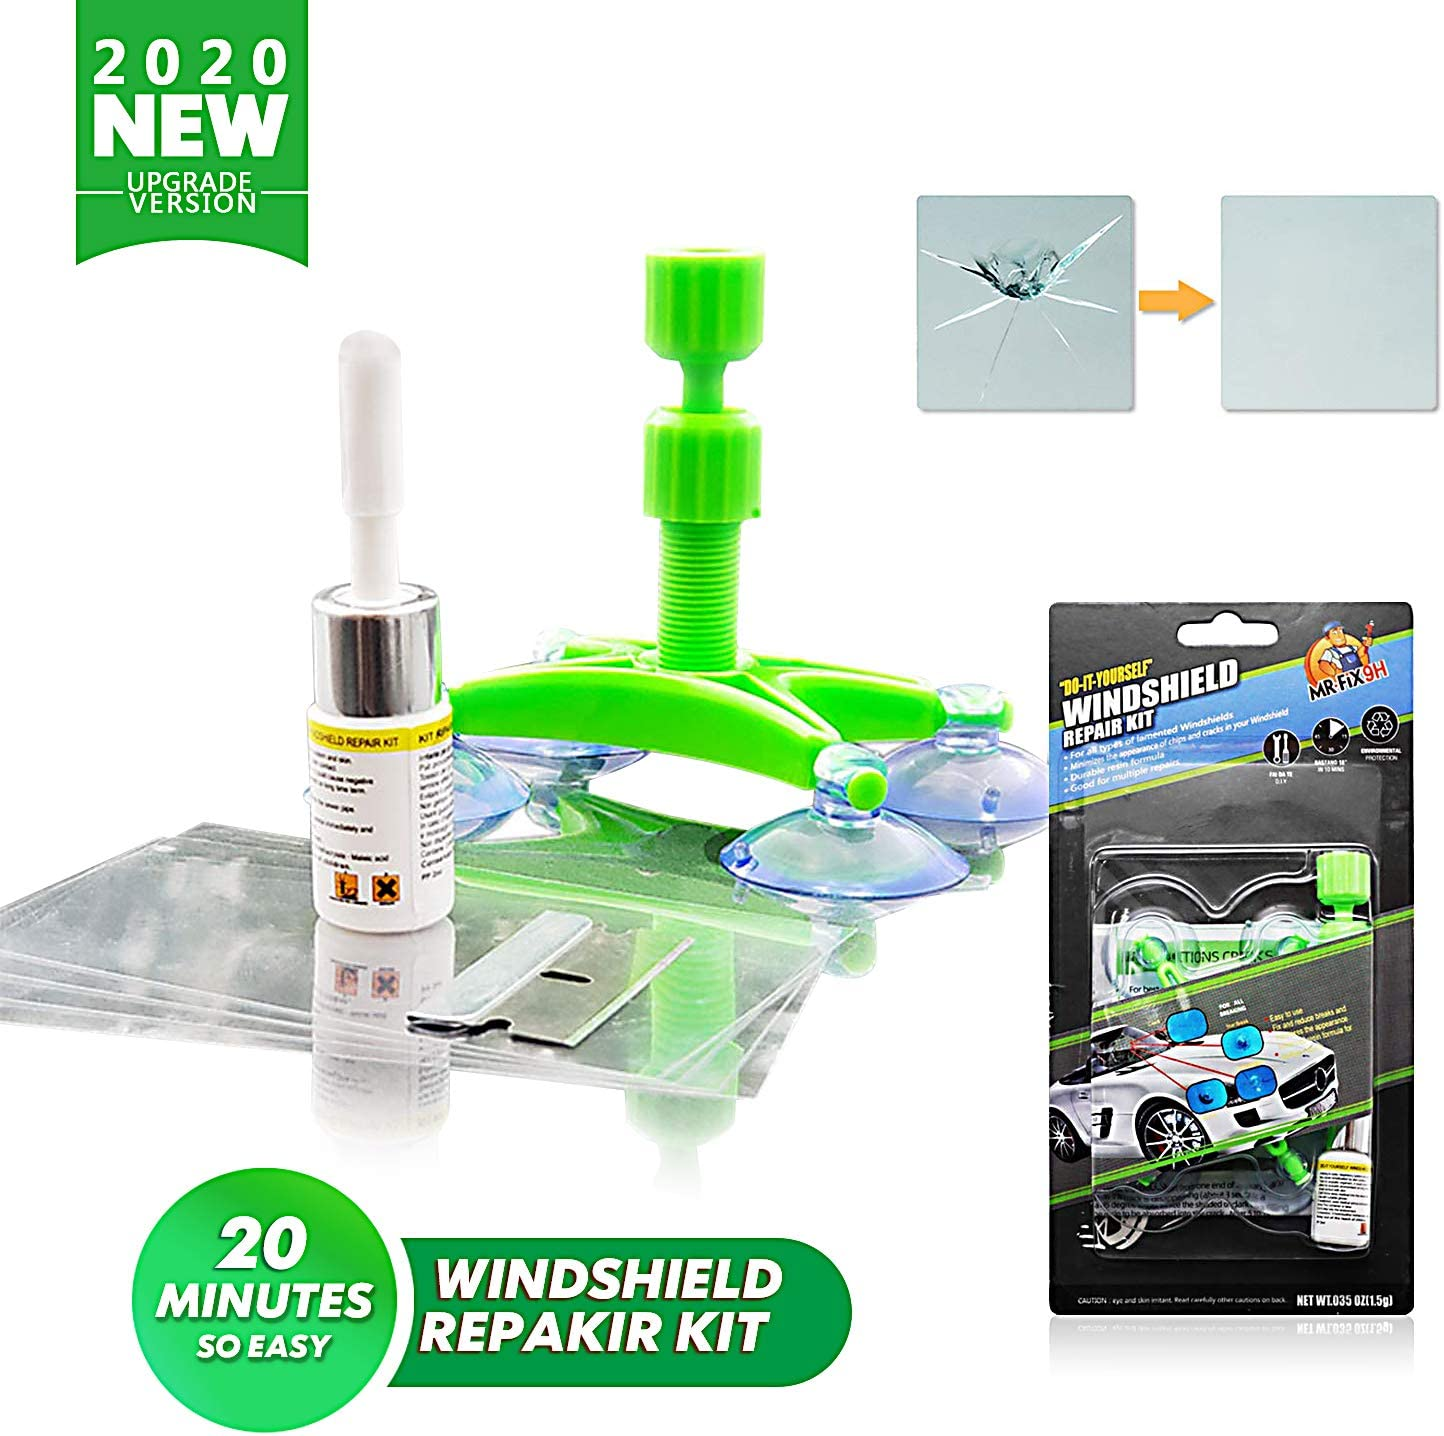 Lifede DIY Auto Glass Repair Kit, Windshield Crack Repair Kit, Car Window Repair kit for Repair Windshield Crack,Half Moon Crescents,Star Chips,Bulls Eye.- 2020 New Version.(Green, 1 Pack)